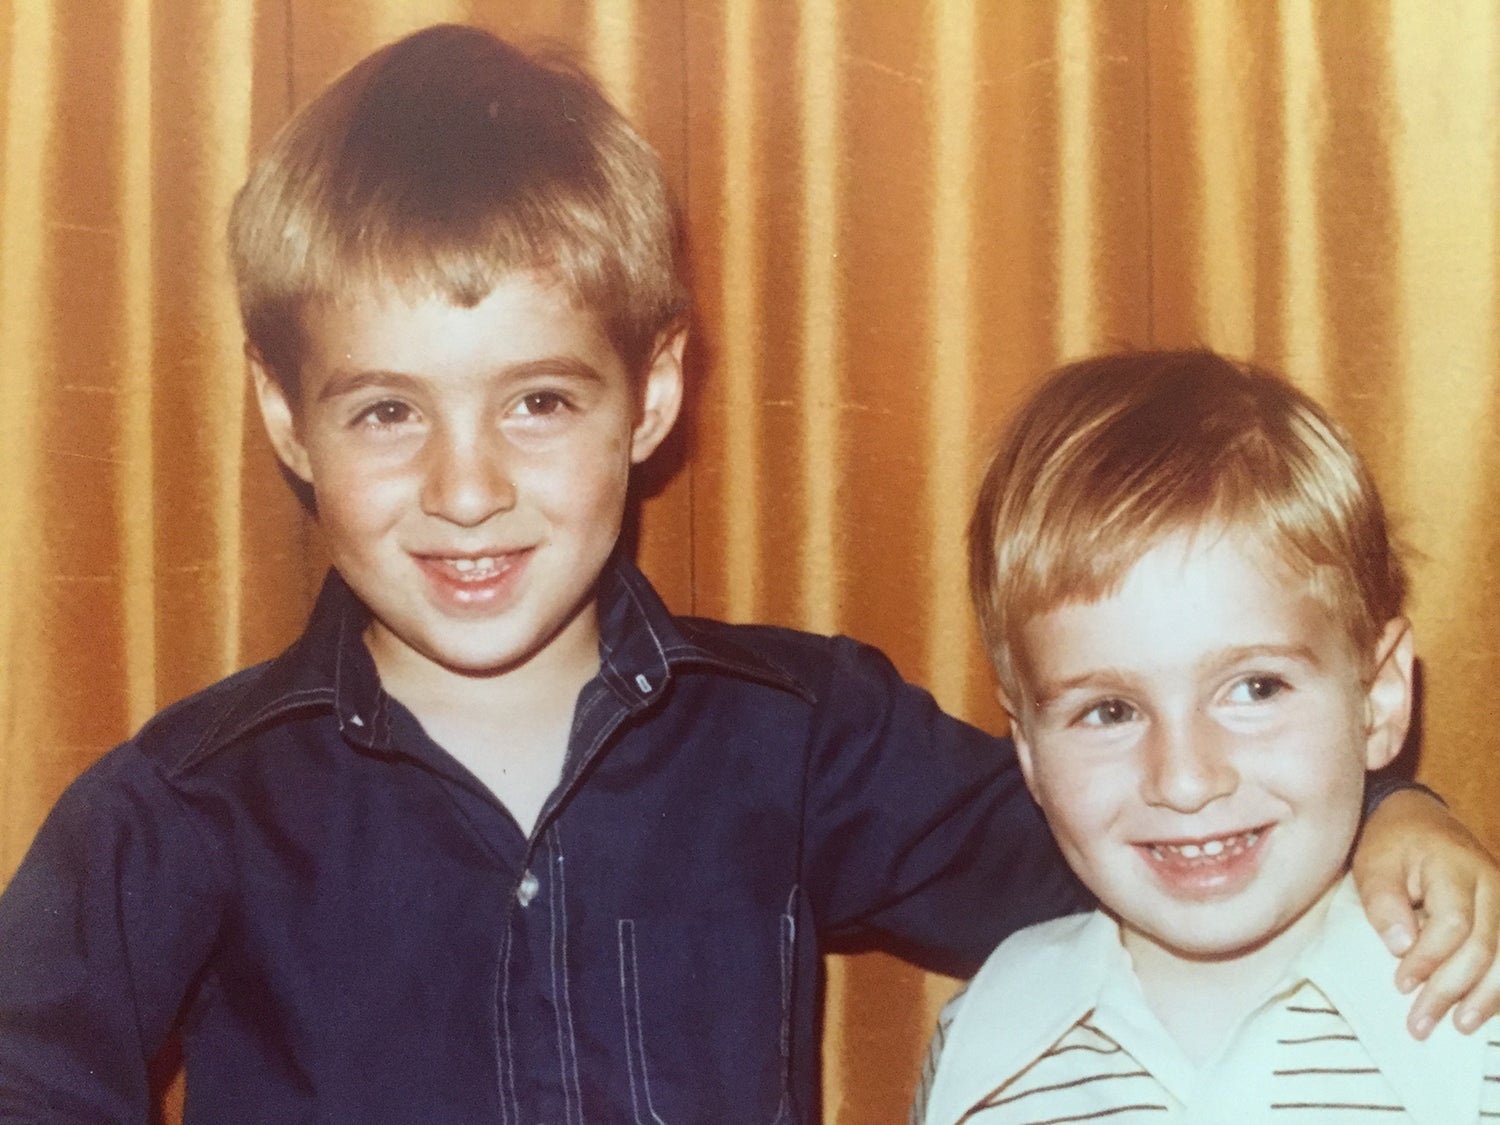 7 Things Grandpa Joe Taught My Brother and Me About Entrepreneurship